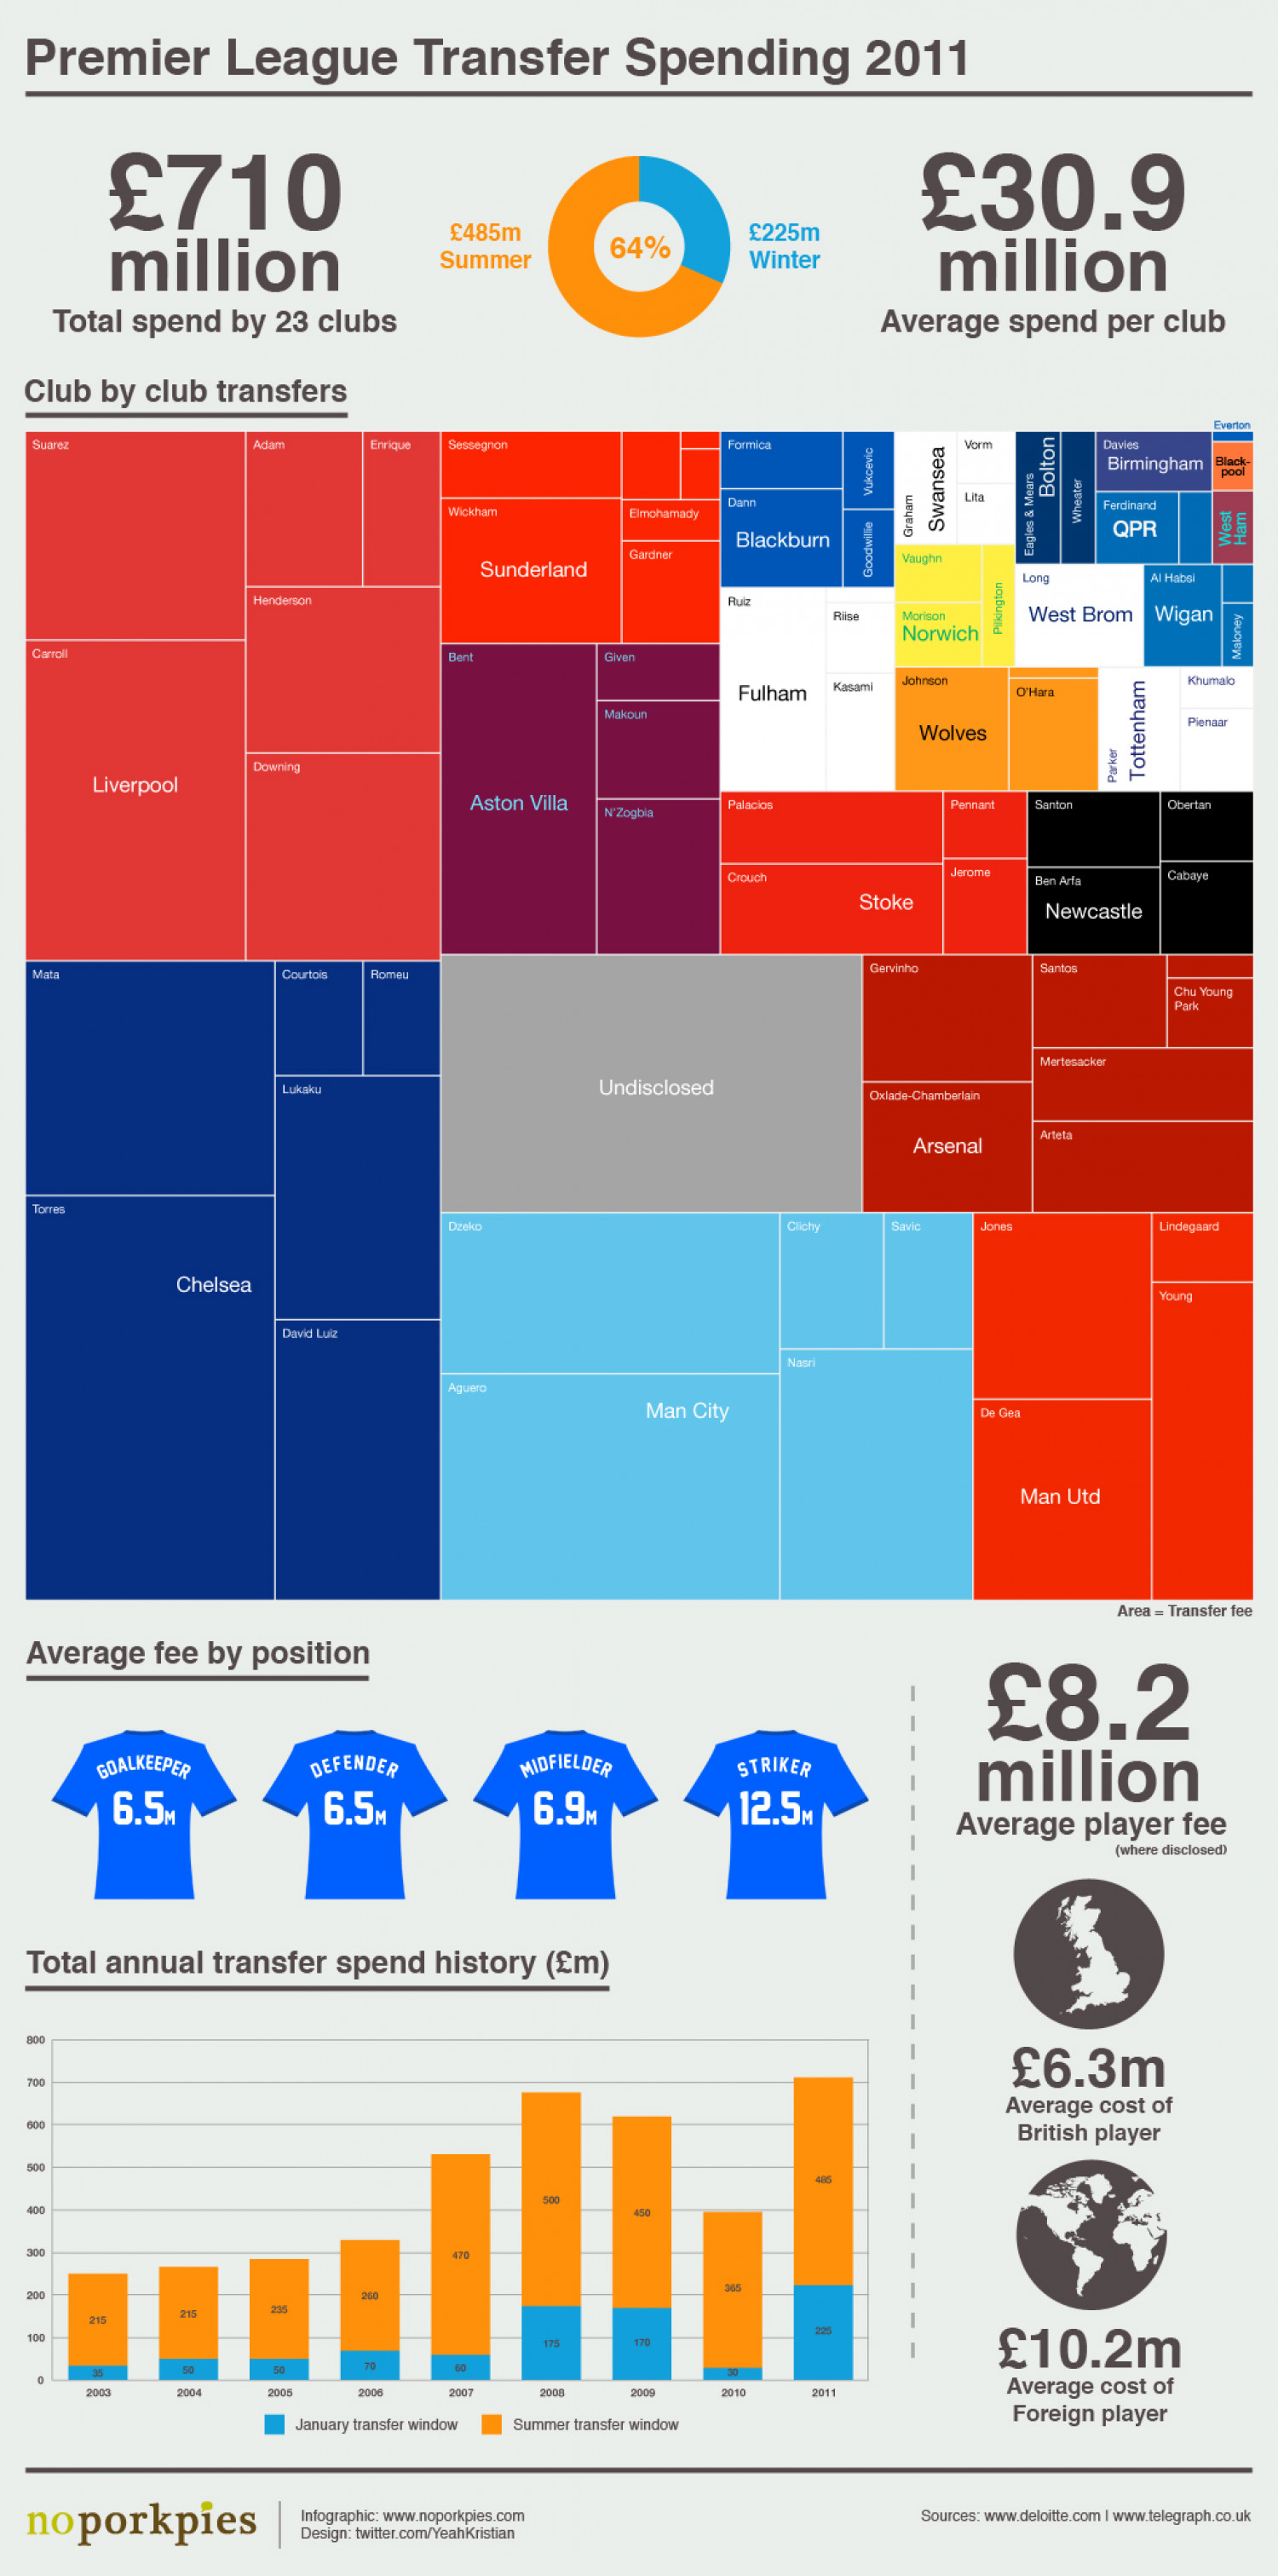 Premier League Transfer Spending 2011 Infographic